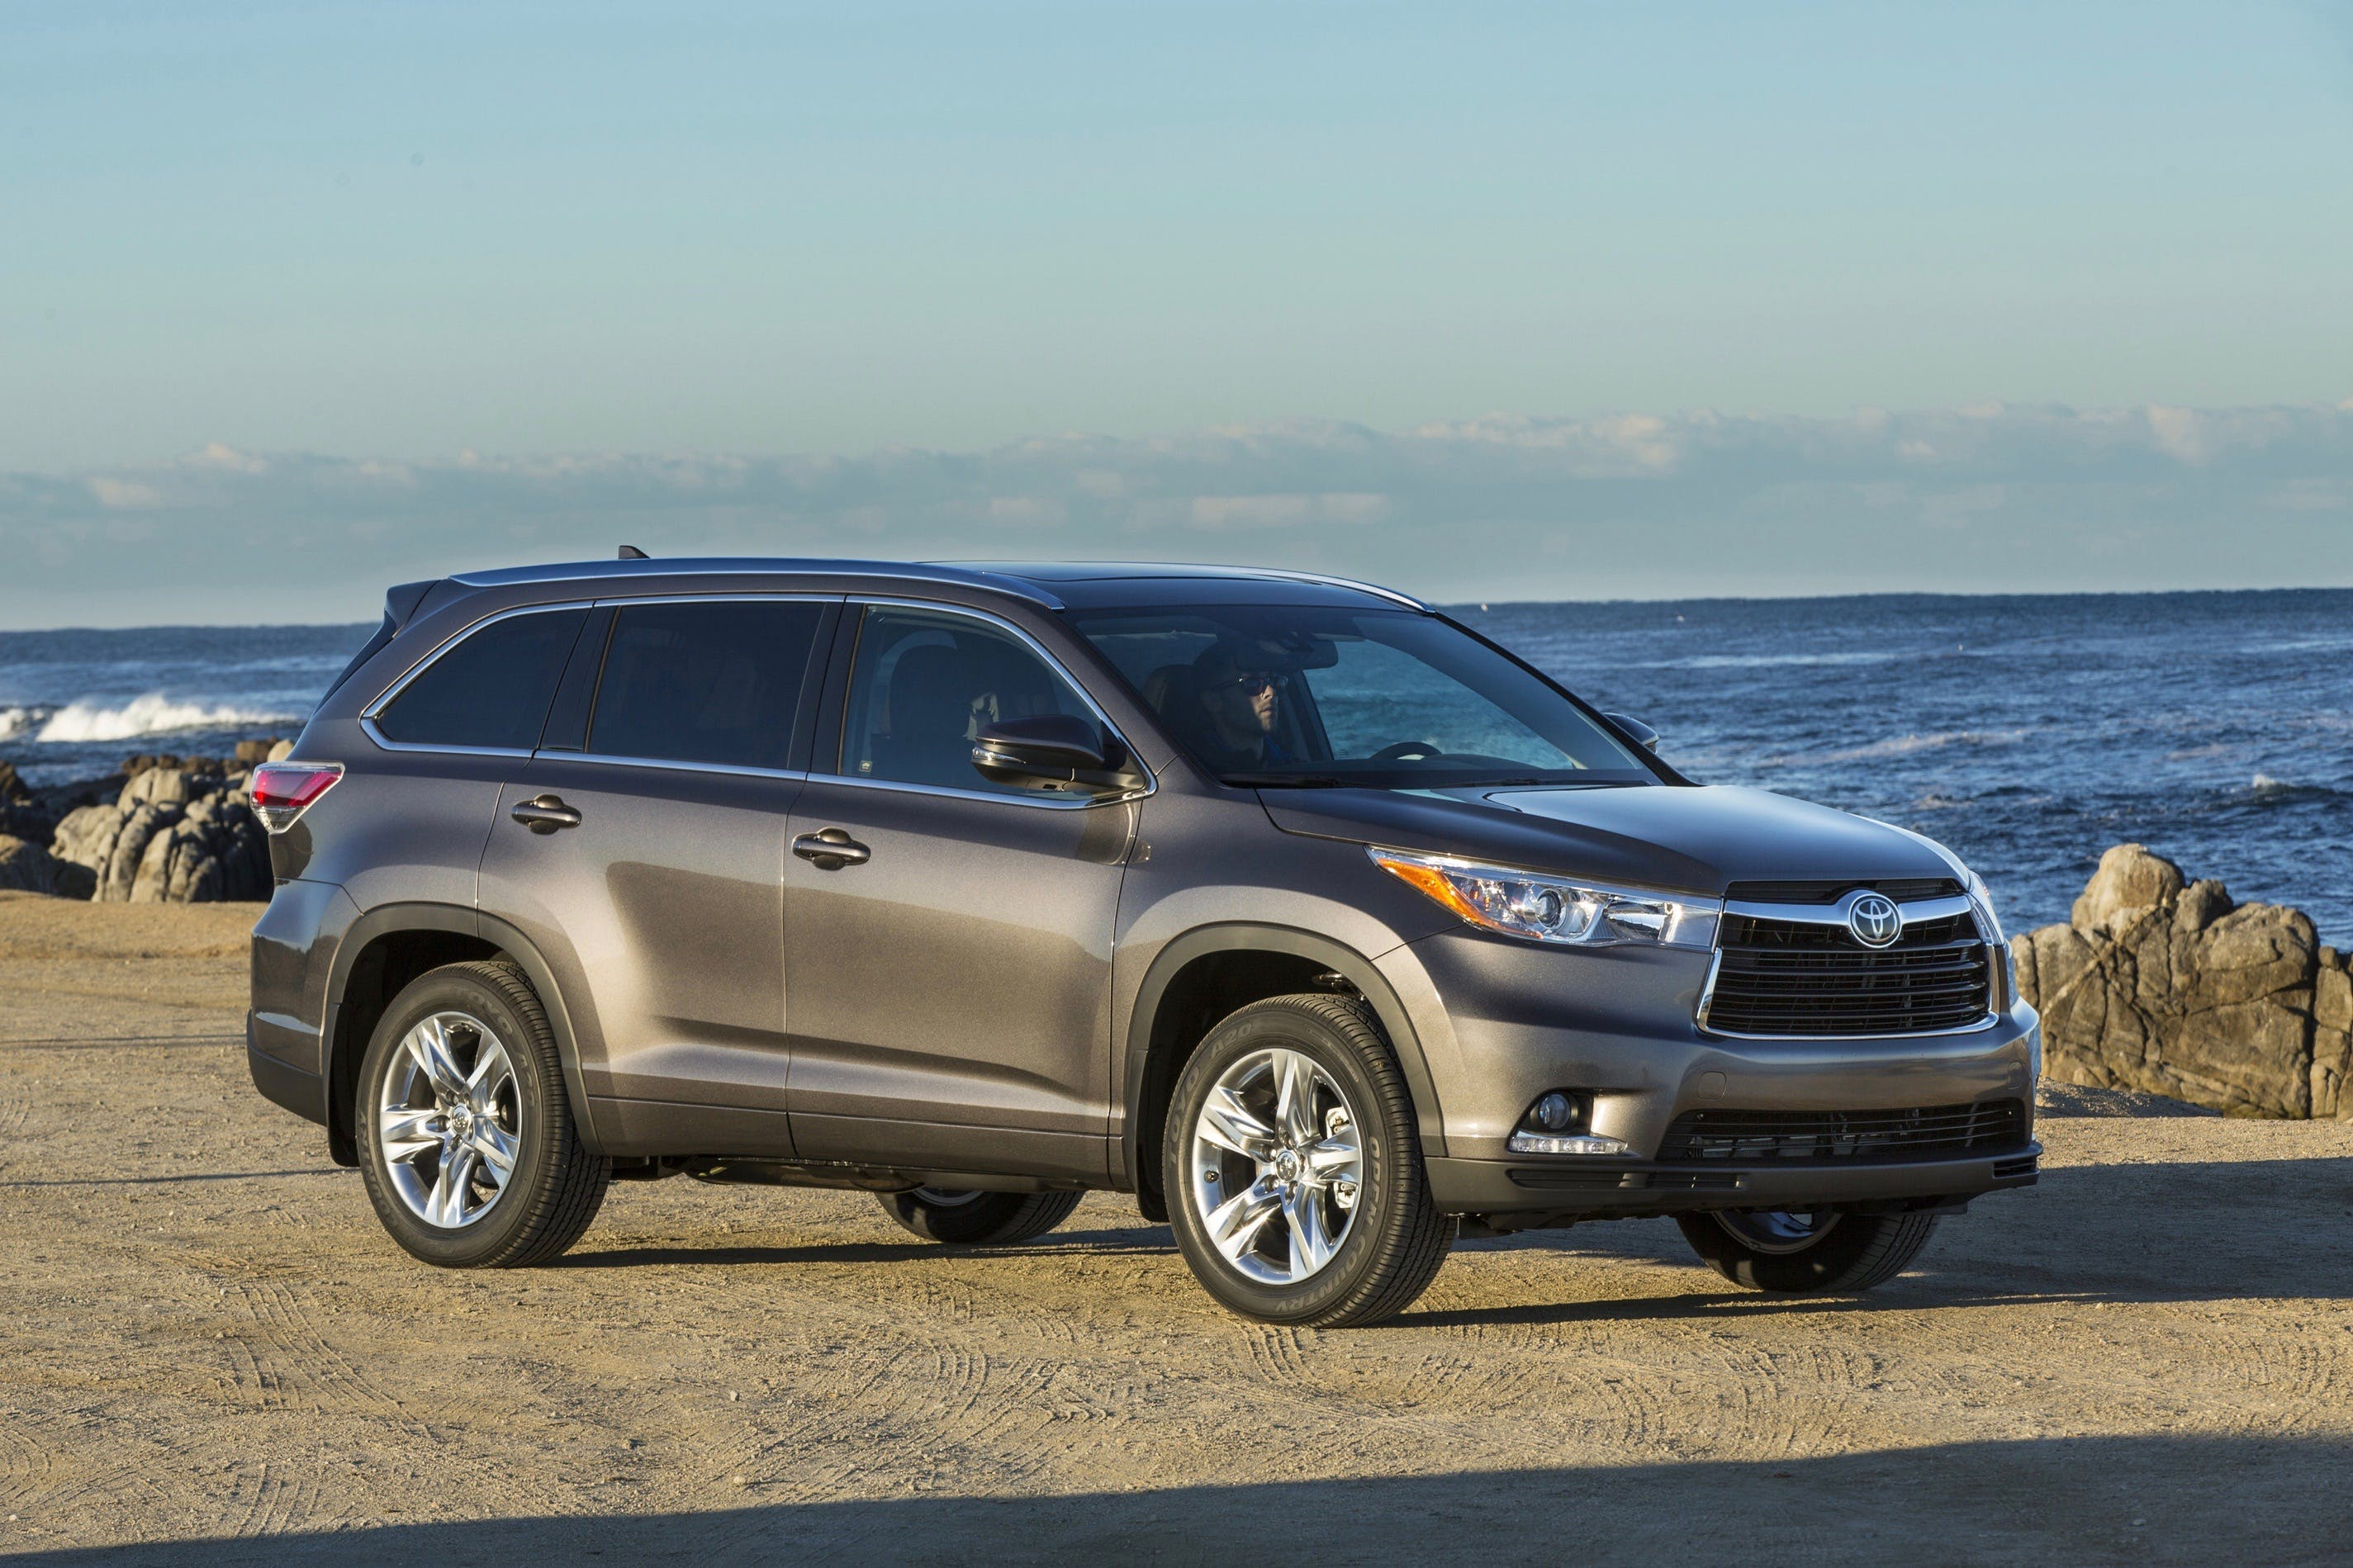 Getting Your 2011-2016 Toyota Highlander Ready for Its New Home